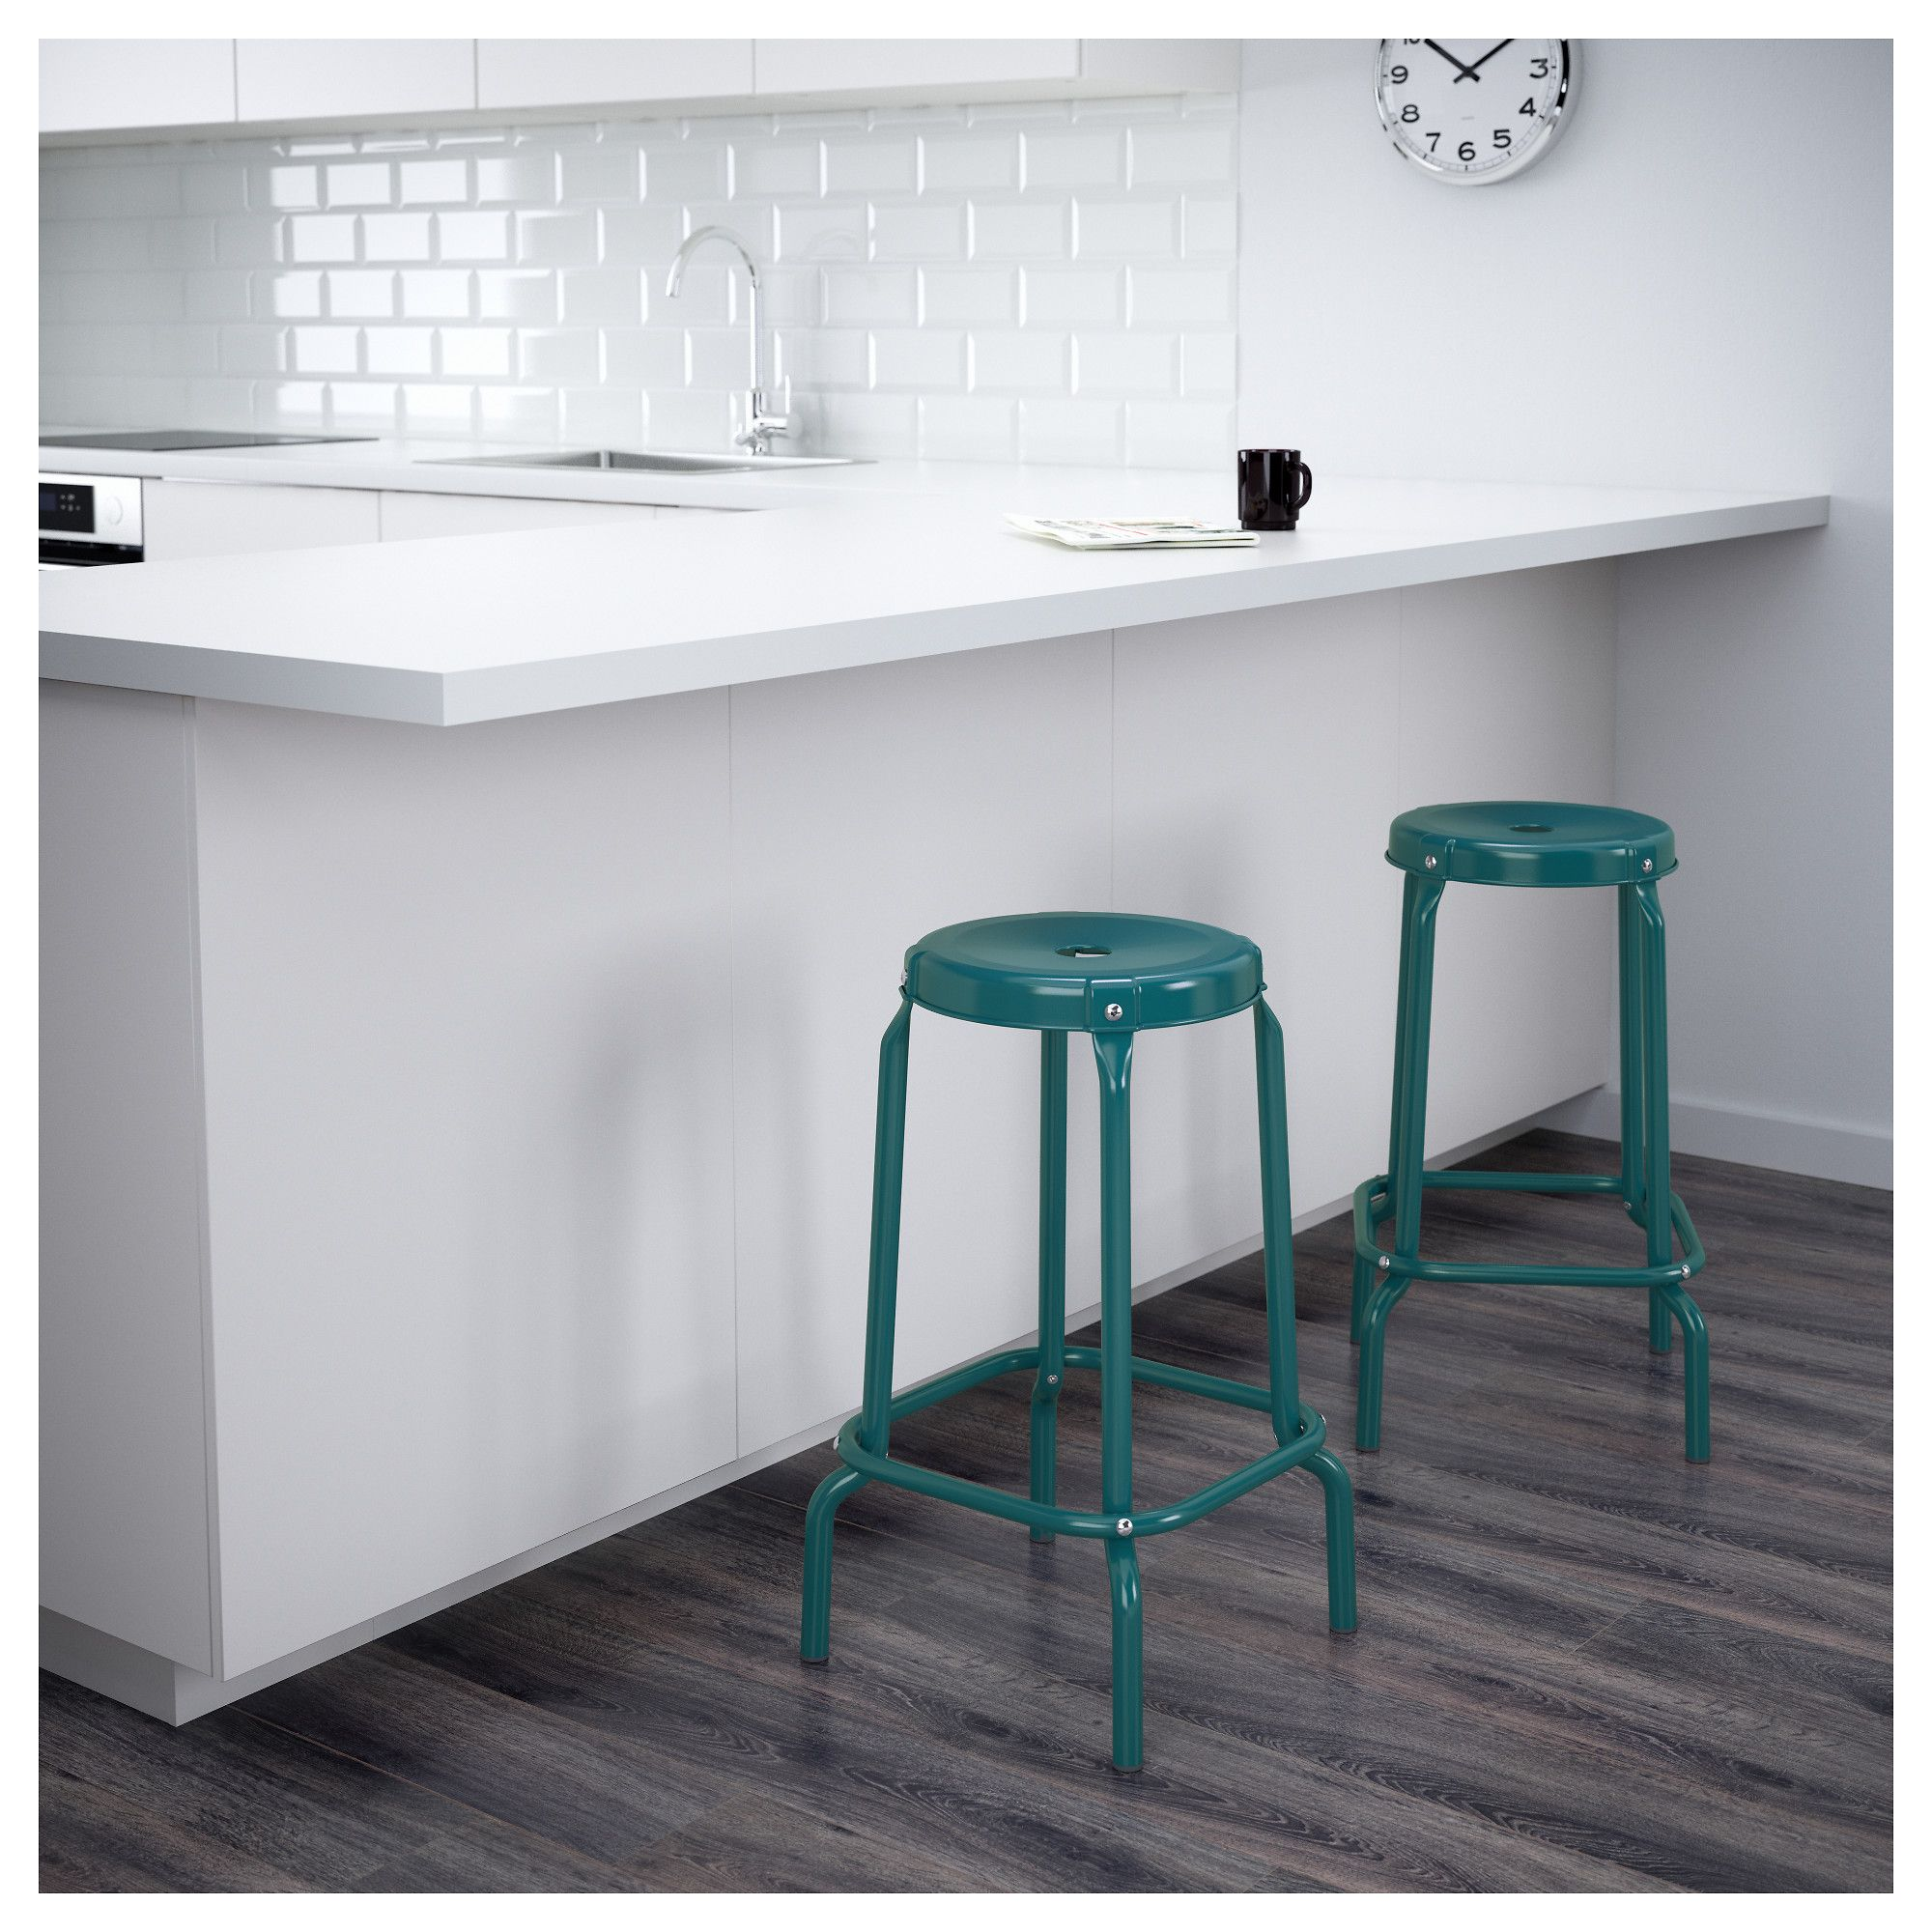 IKEA R…SKOG bar stool Easy to move thanks to the hole in the seat